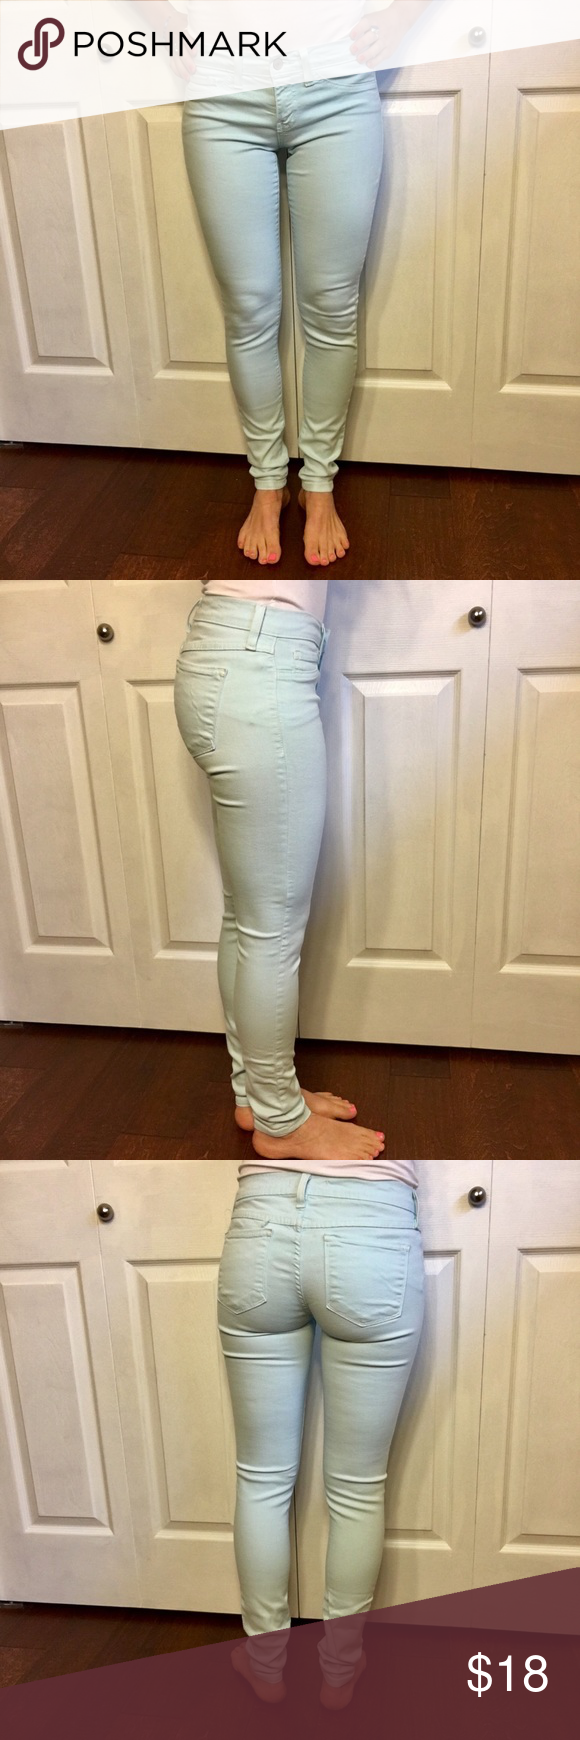 💛 Light Blue Jeans, Perfect For Summer! Super cute jeans for summer! Jeans Skinny